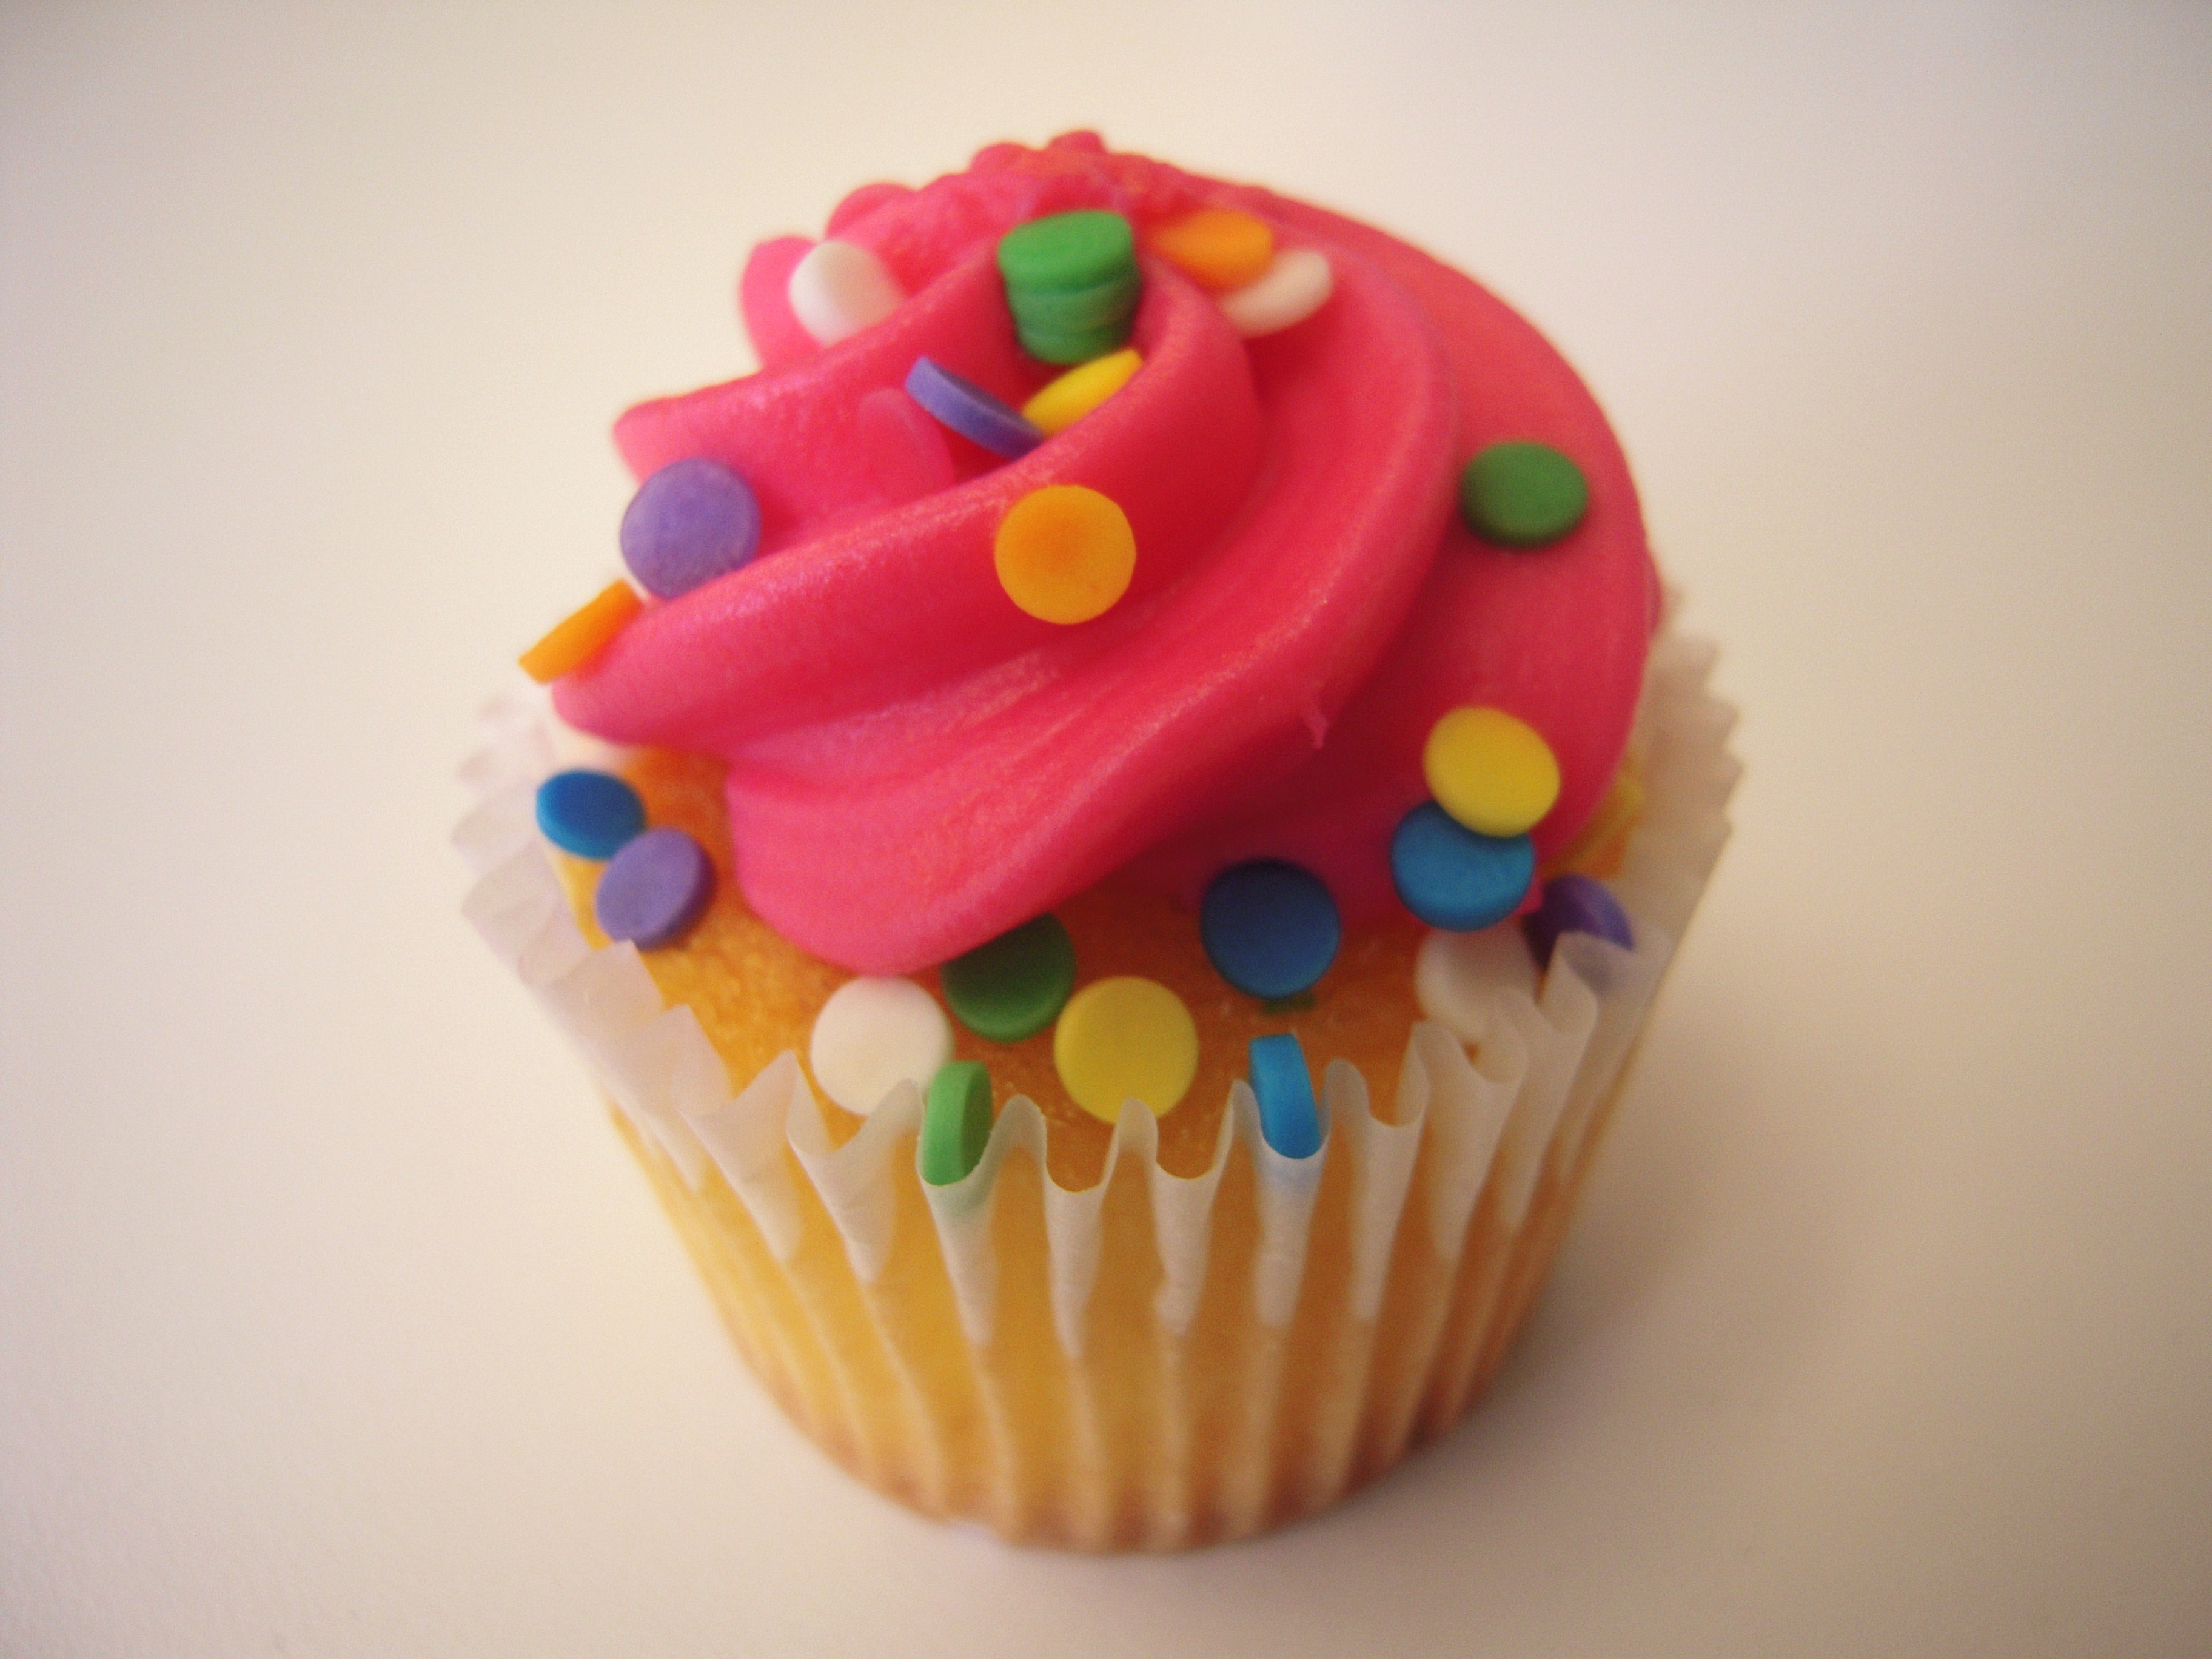 Http Commons Wikimedia Org Wiki File Pink Cupcake Jpg